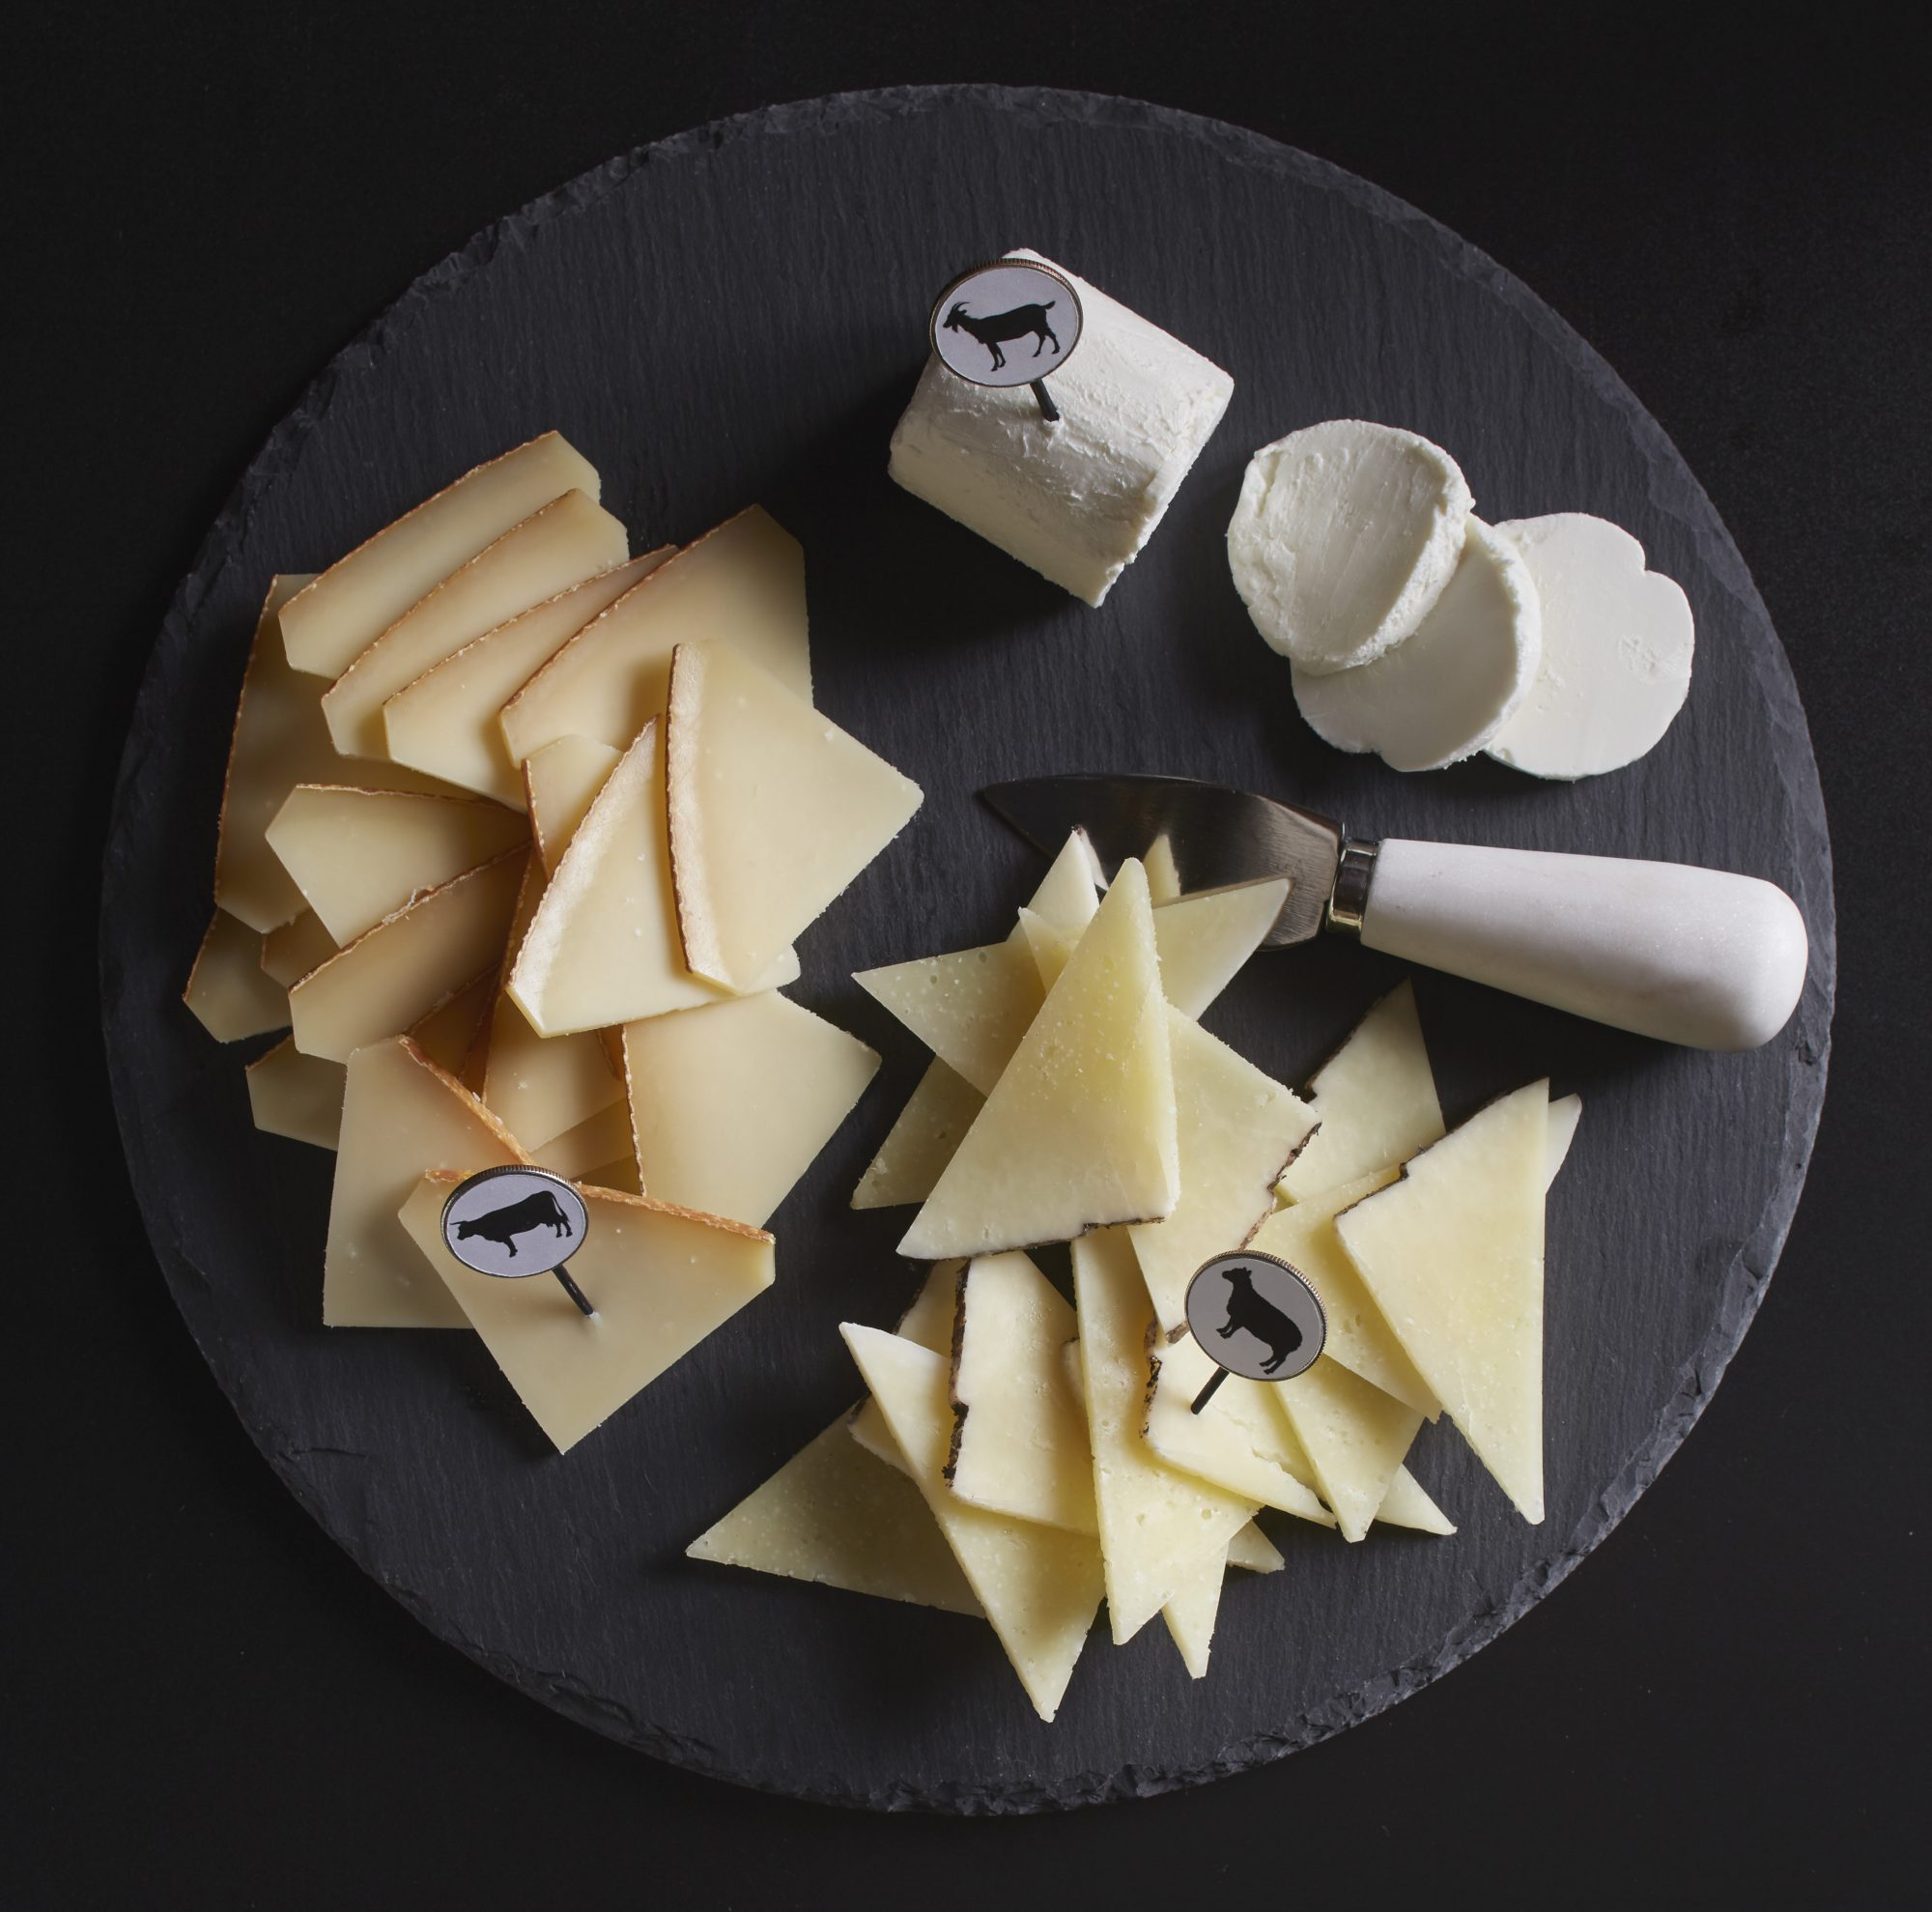 Cheese plate from various milks